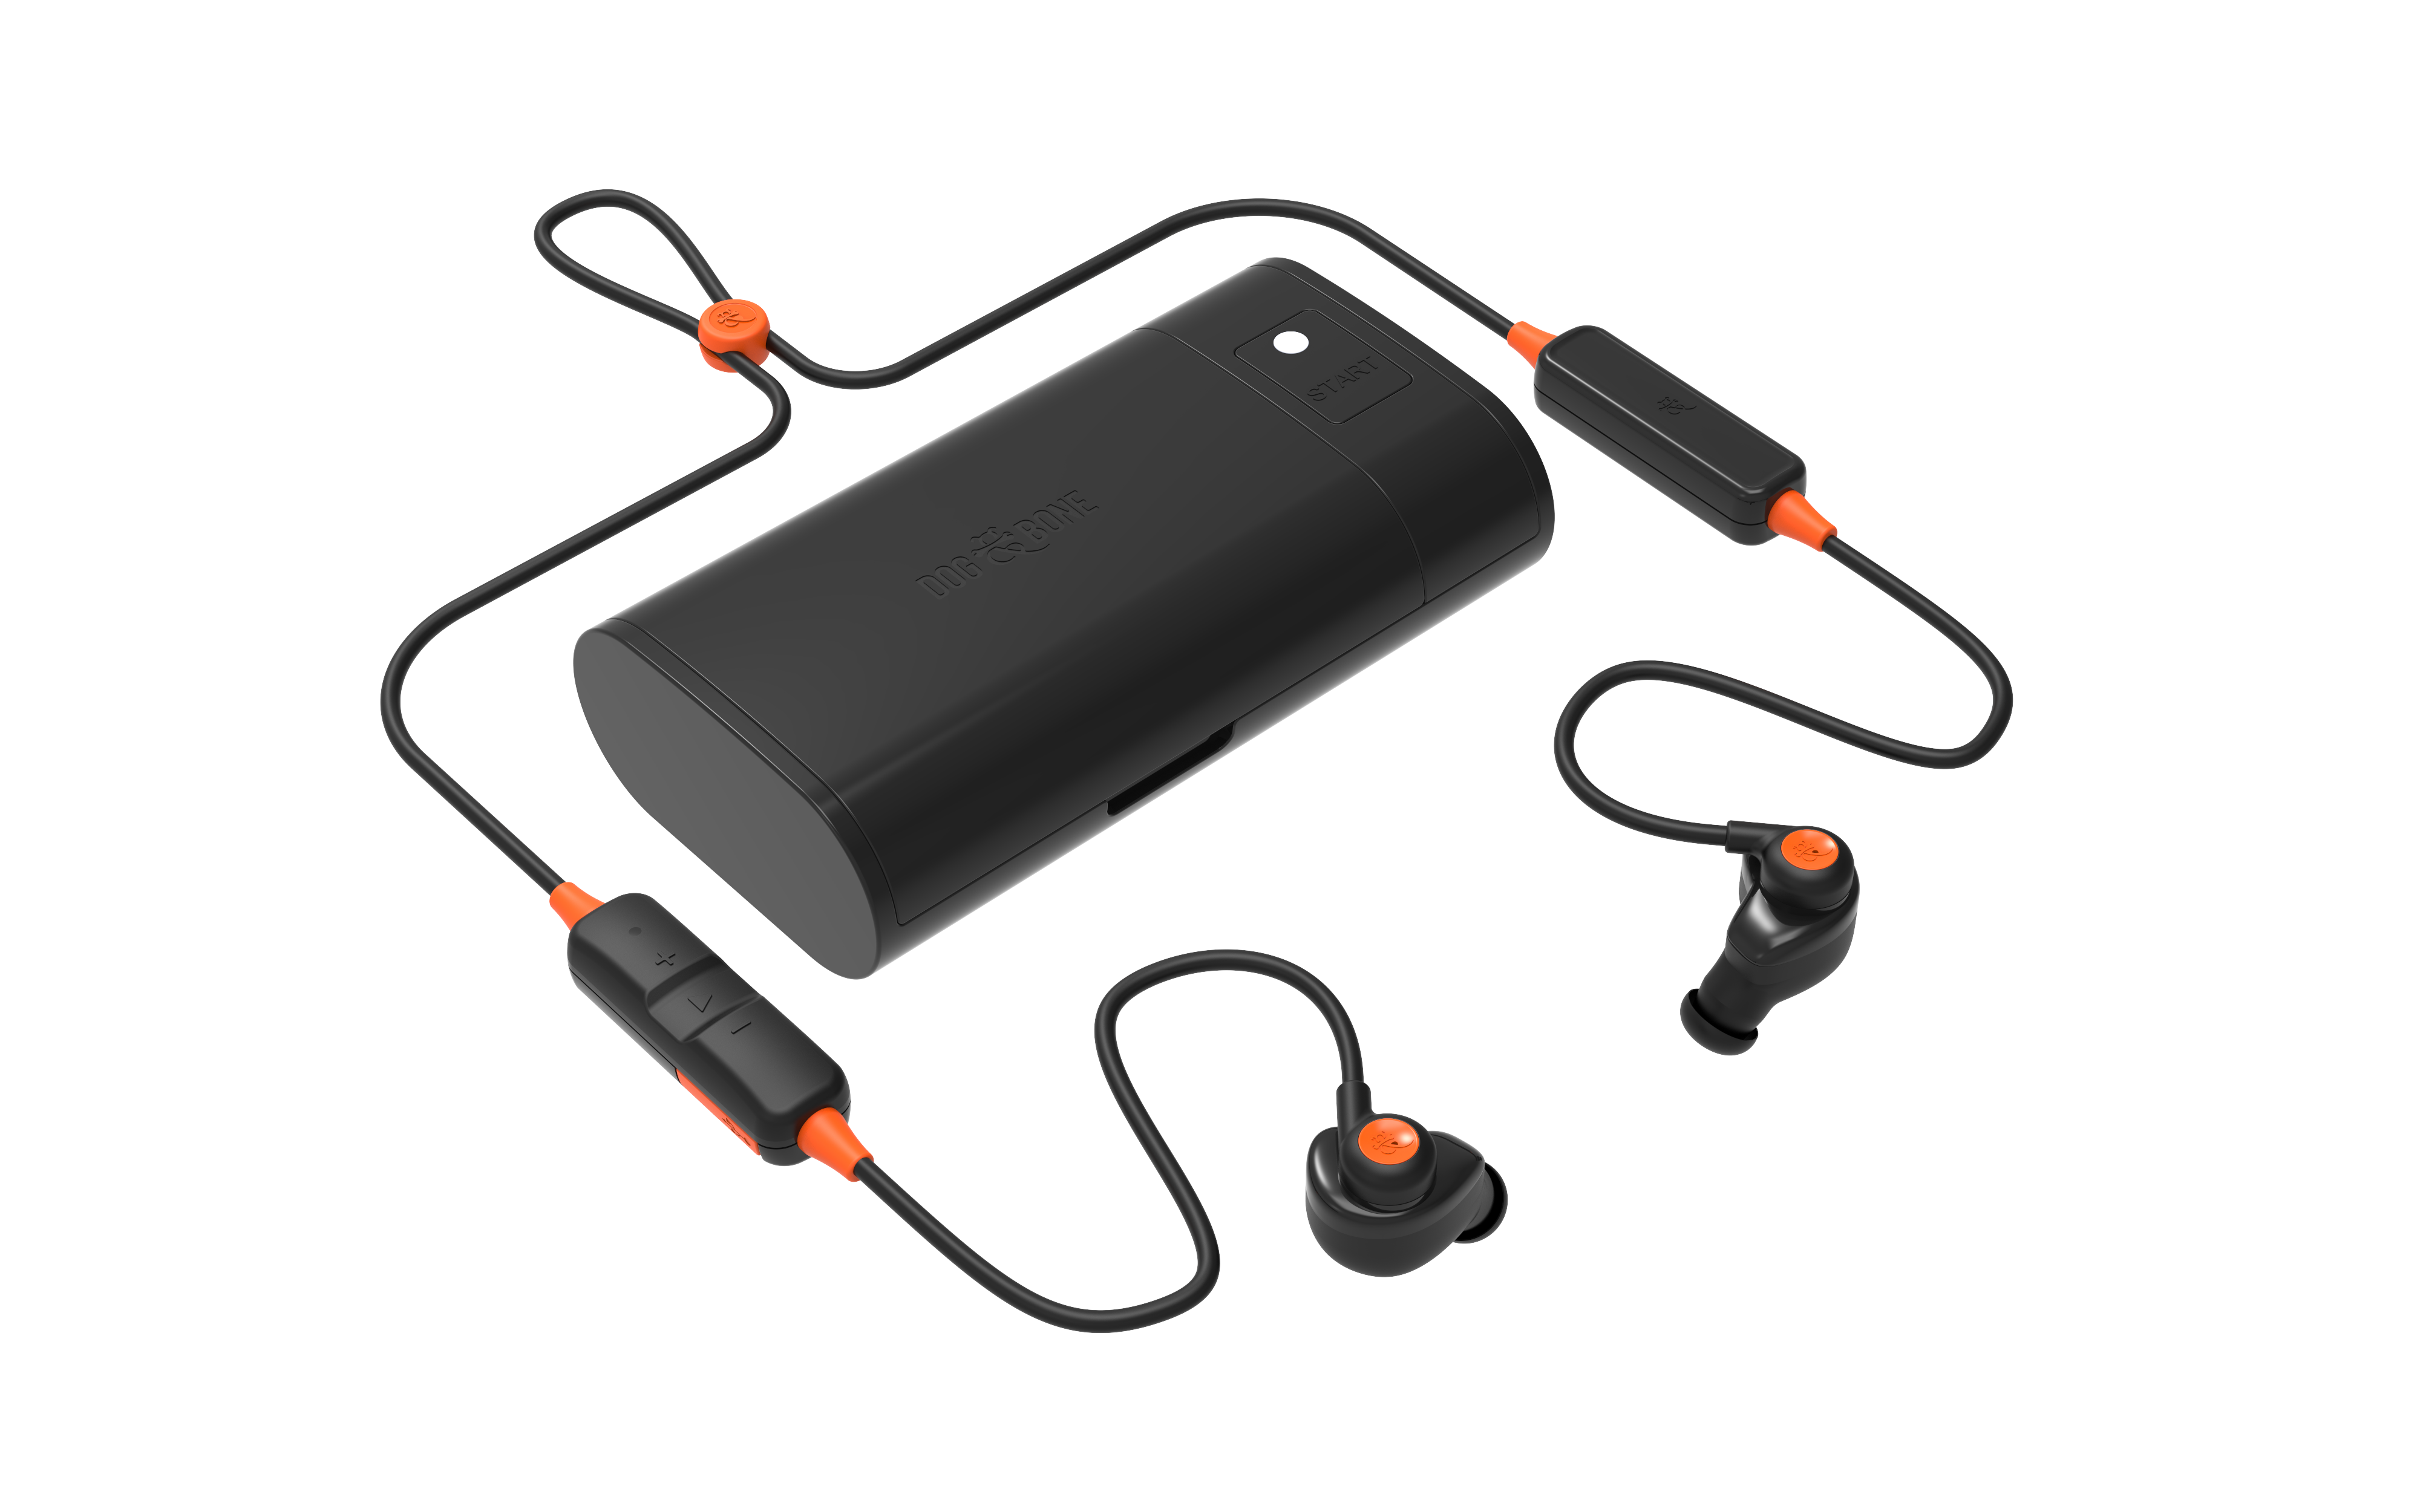 heating dock with earbuds